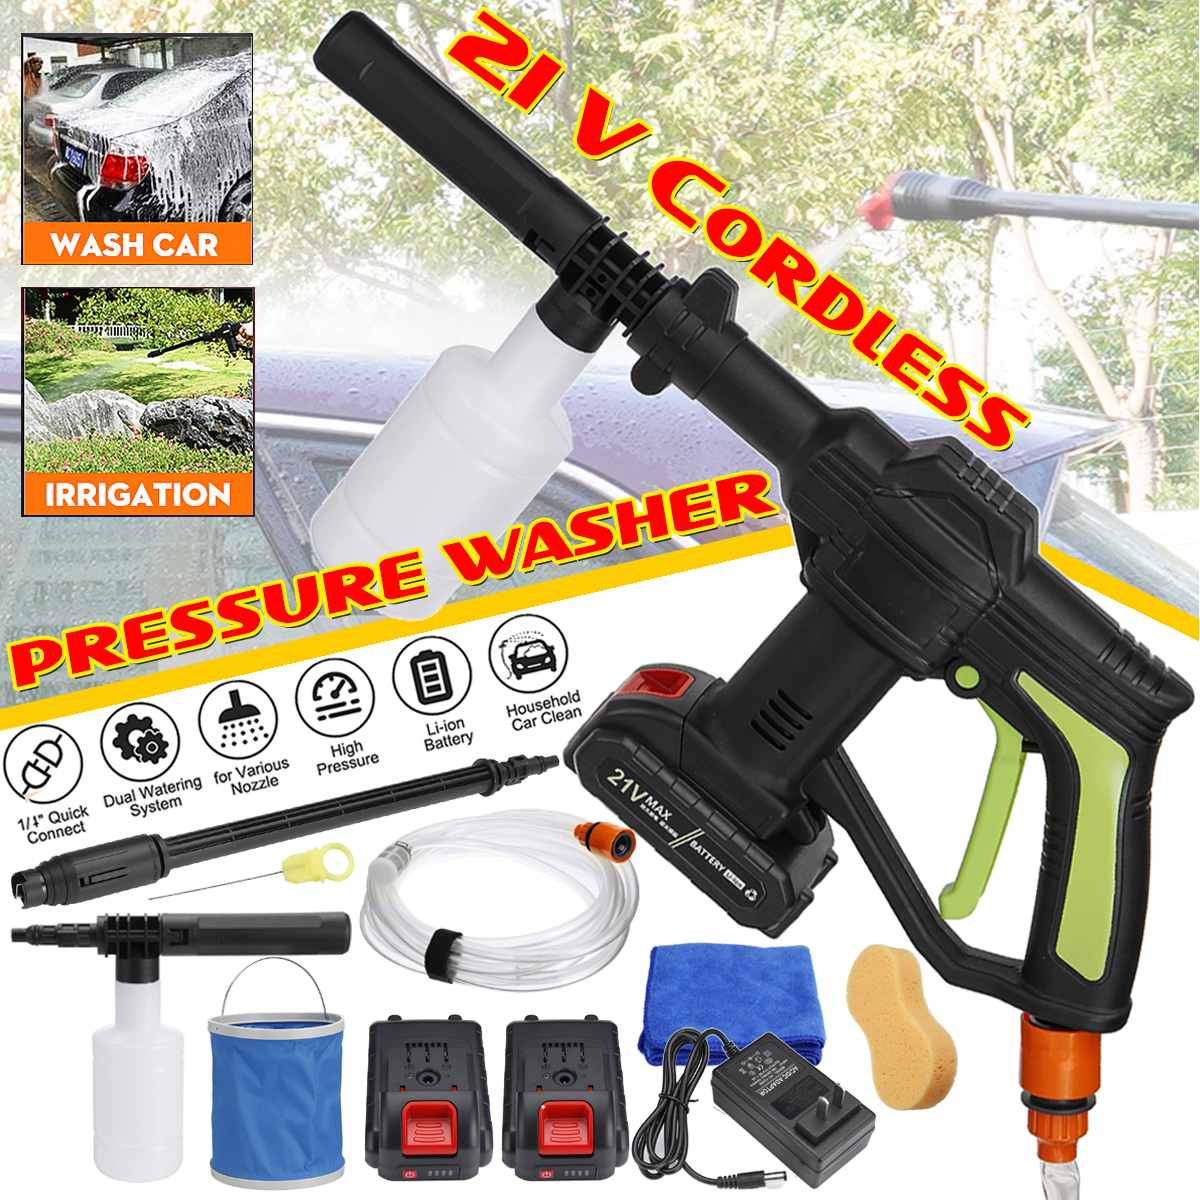 21V Portable Cordless Car Washer Machine High Pressure Electric Water Guns Nozzle Hose Pump Foam Lance Battery Rechargable|Car Washer|Automobiles & Motorcycles - title=